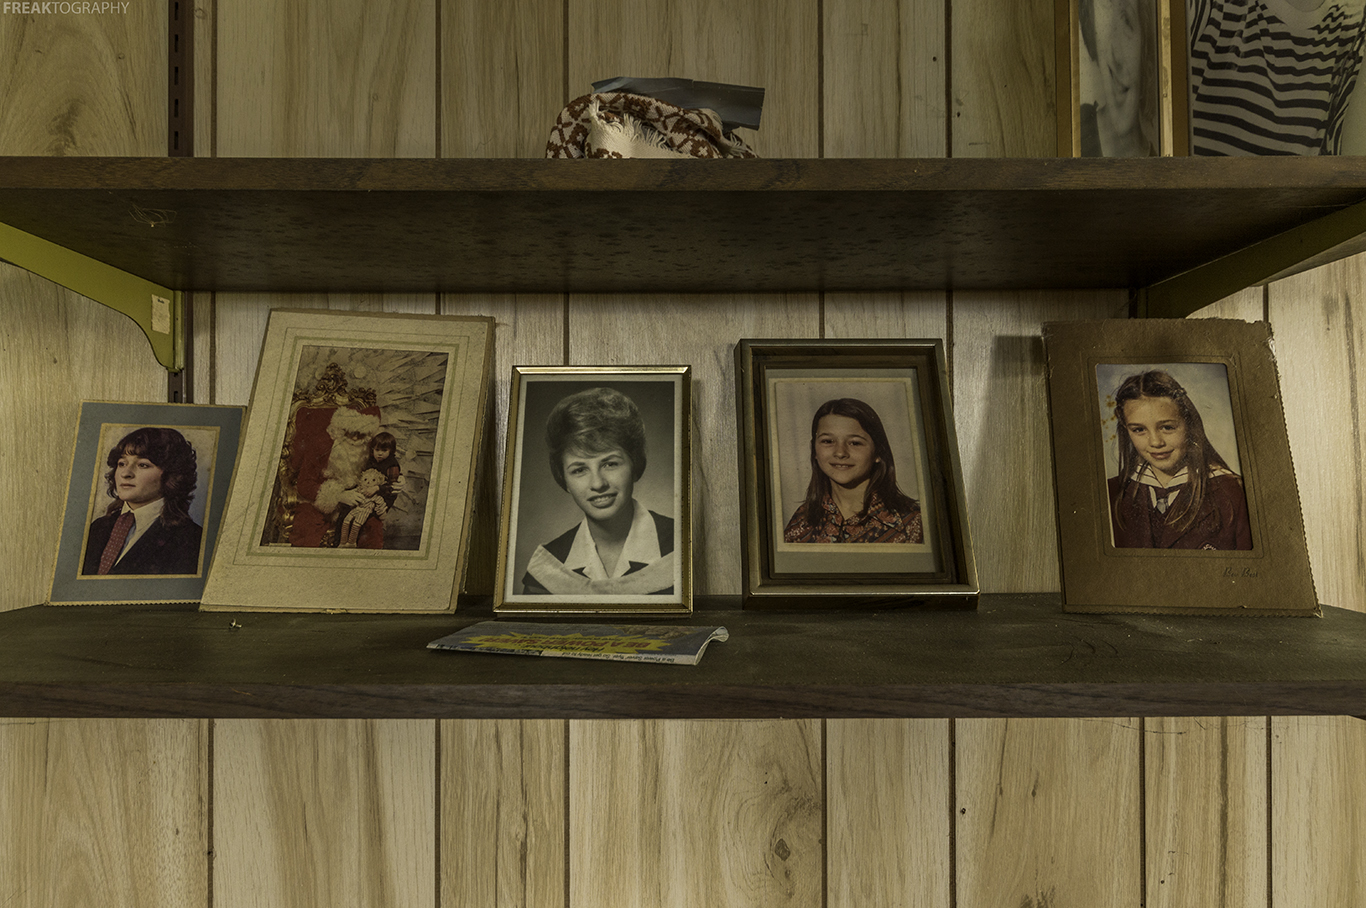 Family Photos on a shelf found inside an abandoned ontario house.